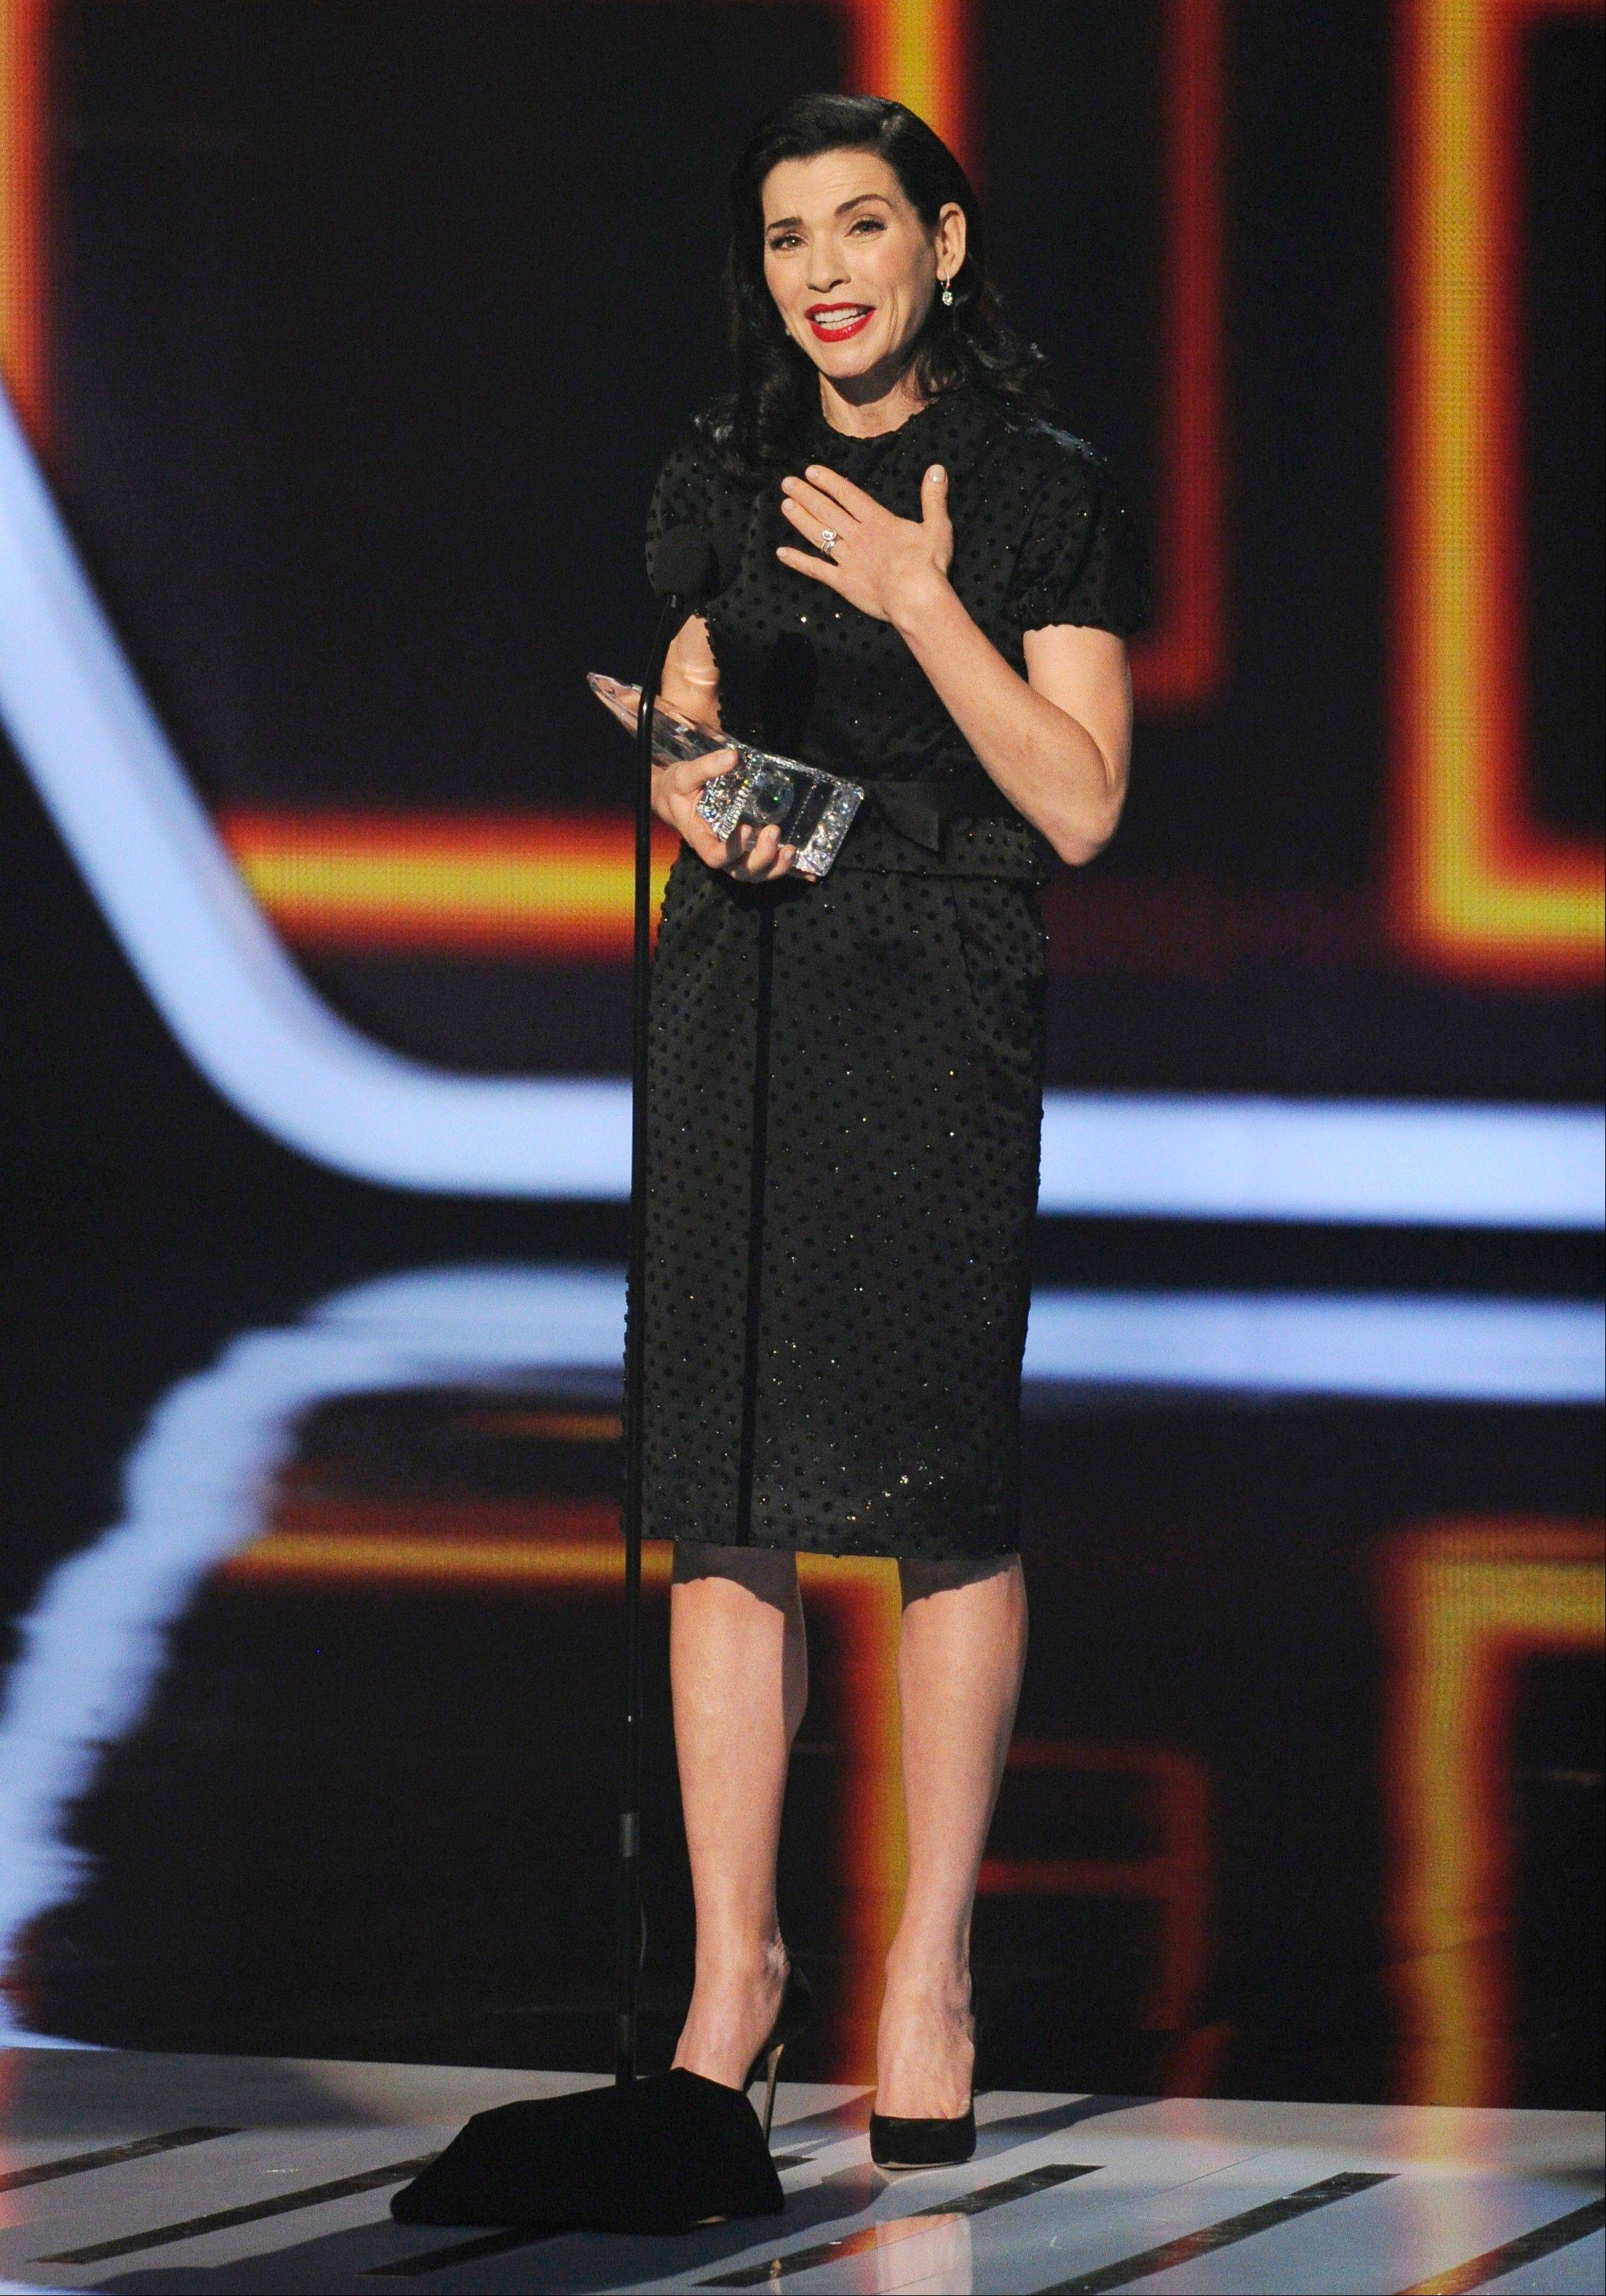 Associated PressJulianna Margulies accepts the award for favorite network TV drama at the 40th annual People's Choice Awards at the Nokia Theatre L.A. Live on Wednesday, Jan. 8, 2014, in Los Angeles.